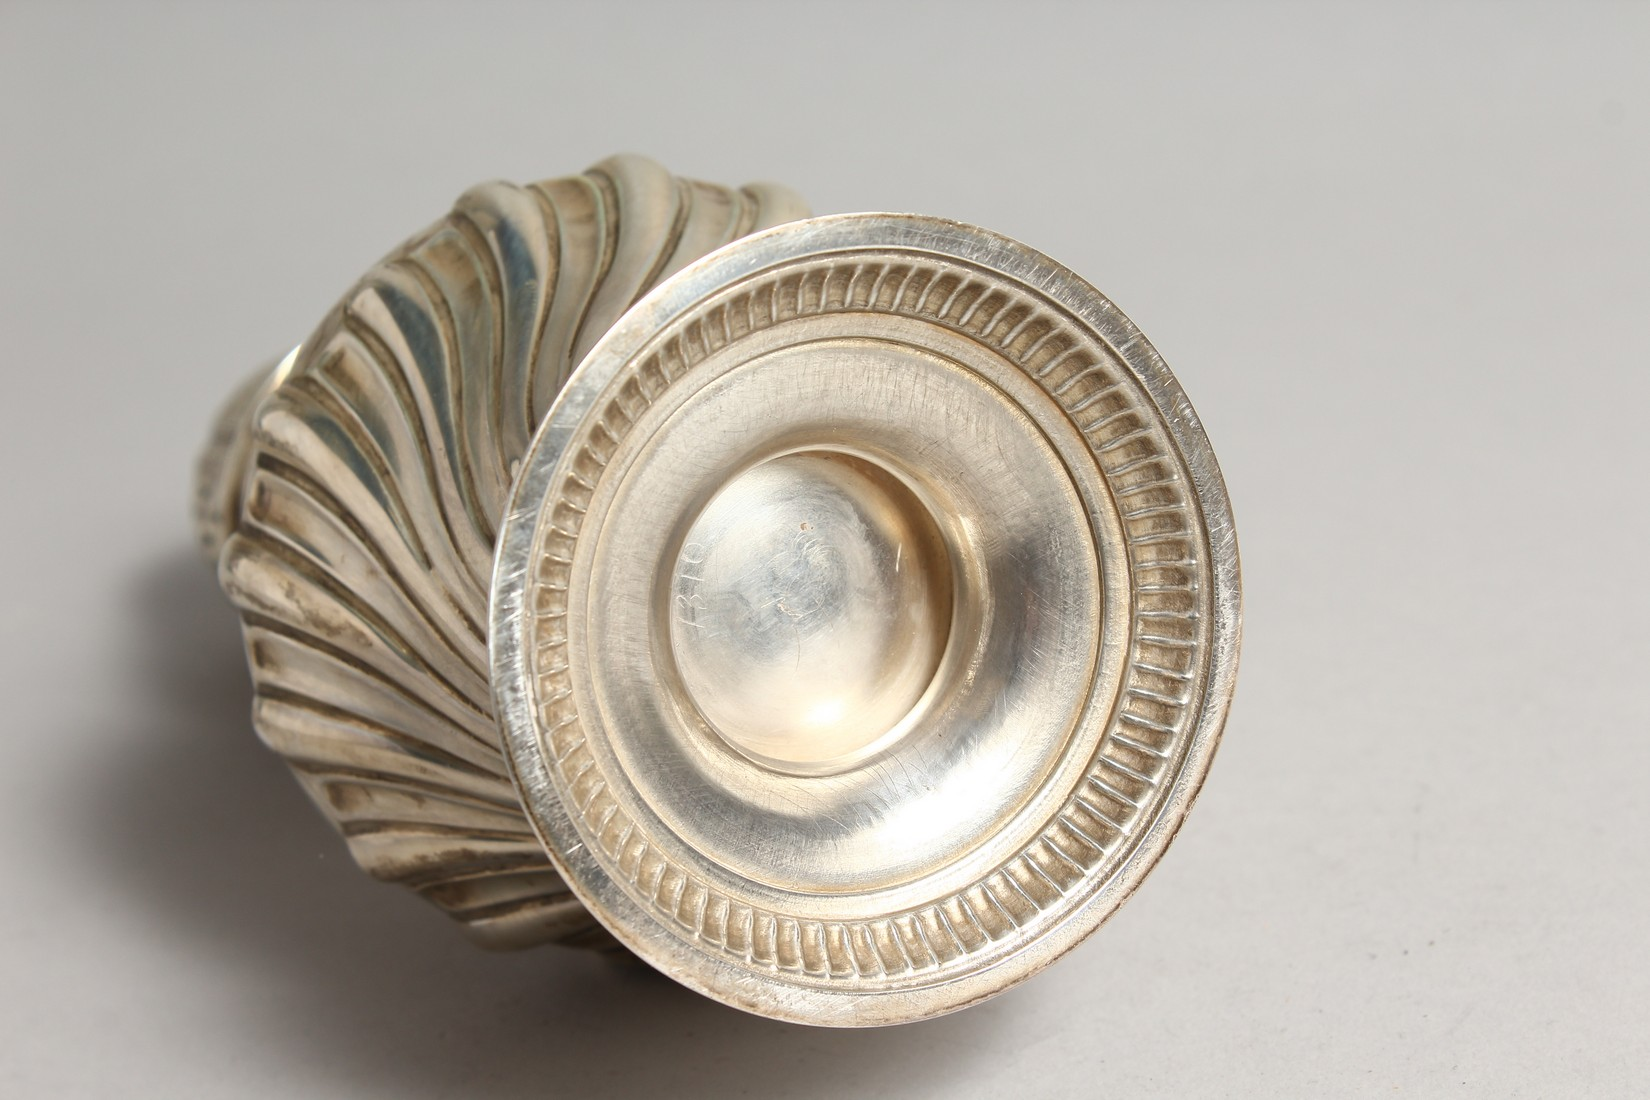 A LARGE SILVER PEDESTAL SUGAR CASTER, with wrythen fluted body, London 1894, 9.75ins high. - Image 7 of 7